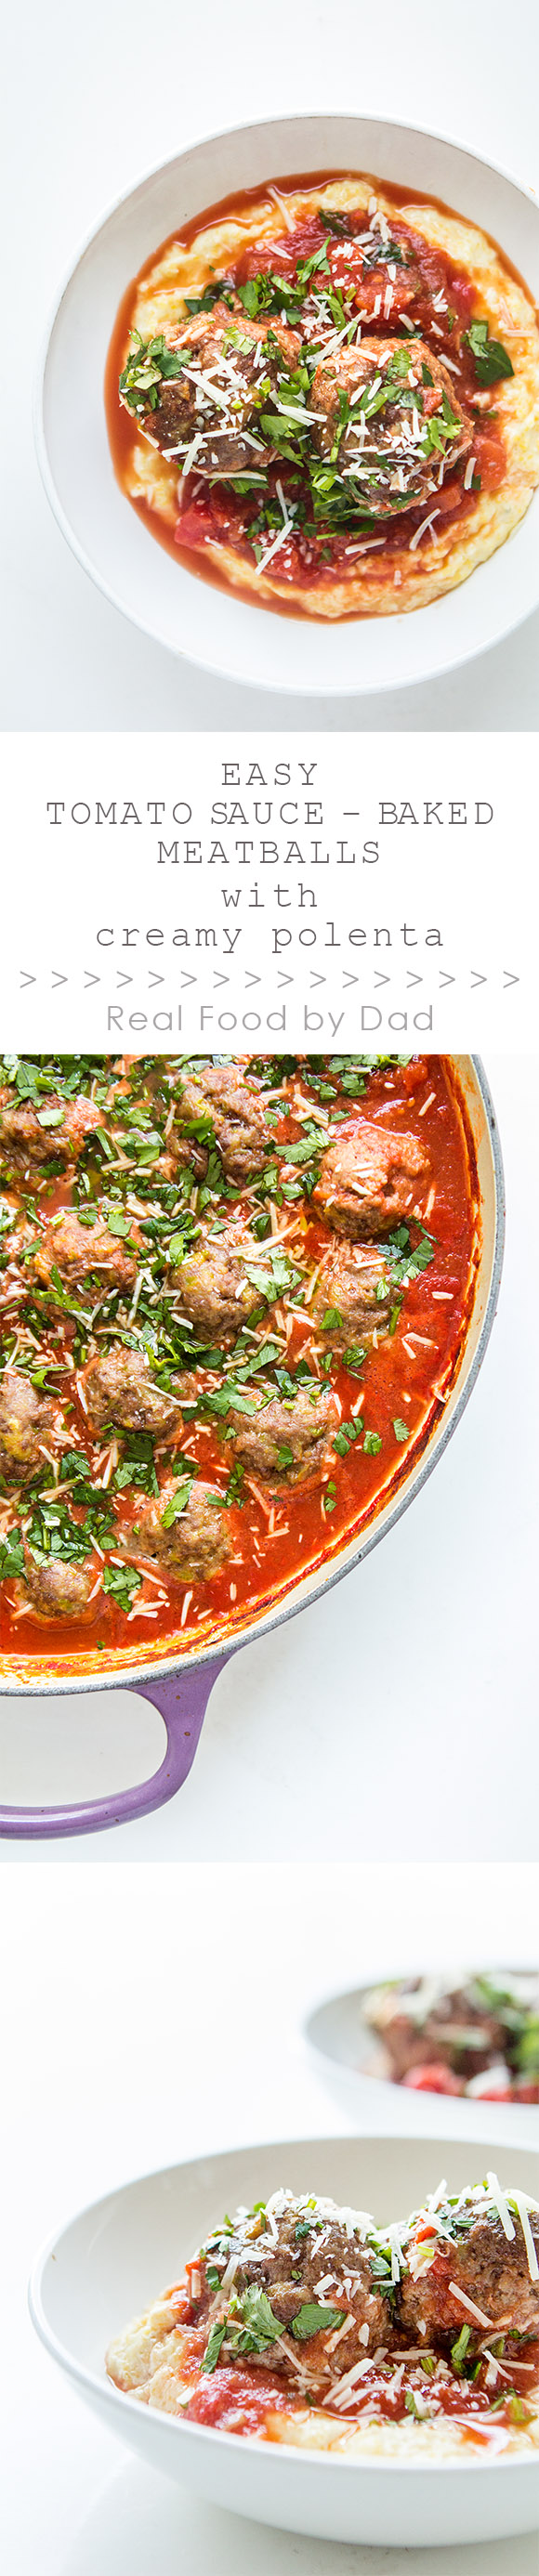 Easy Tomato Baked Meatballs with Polenta by Real Food by Dad_Panel